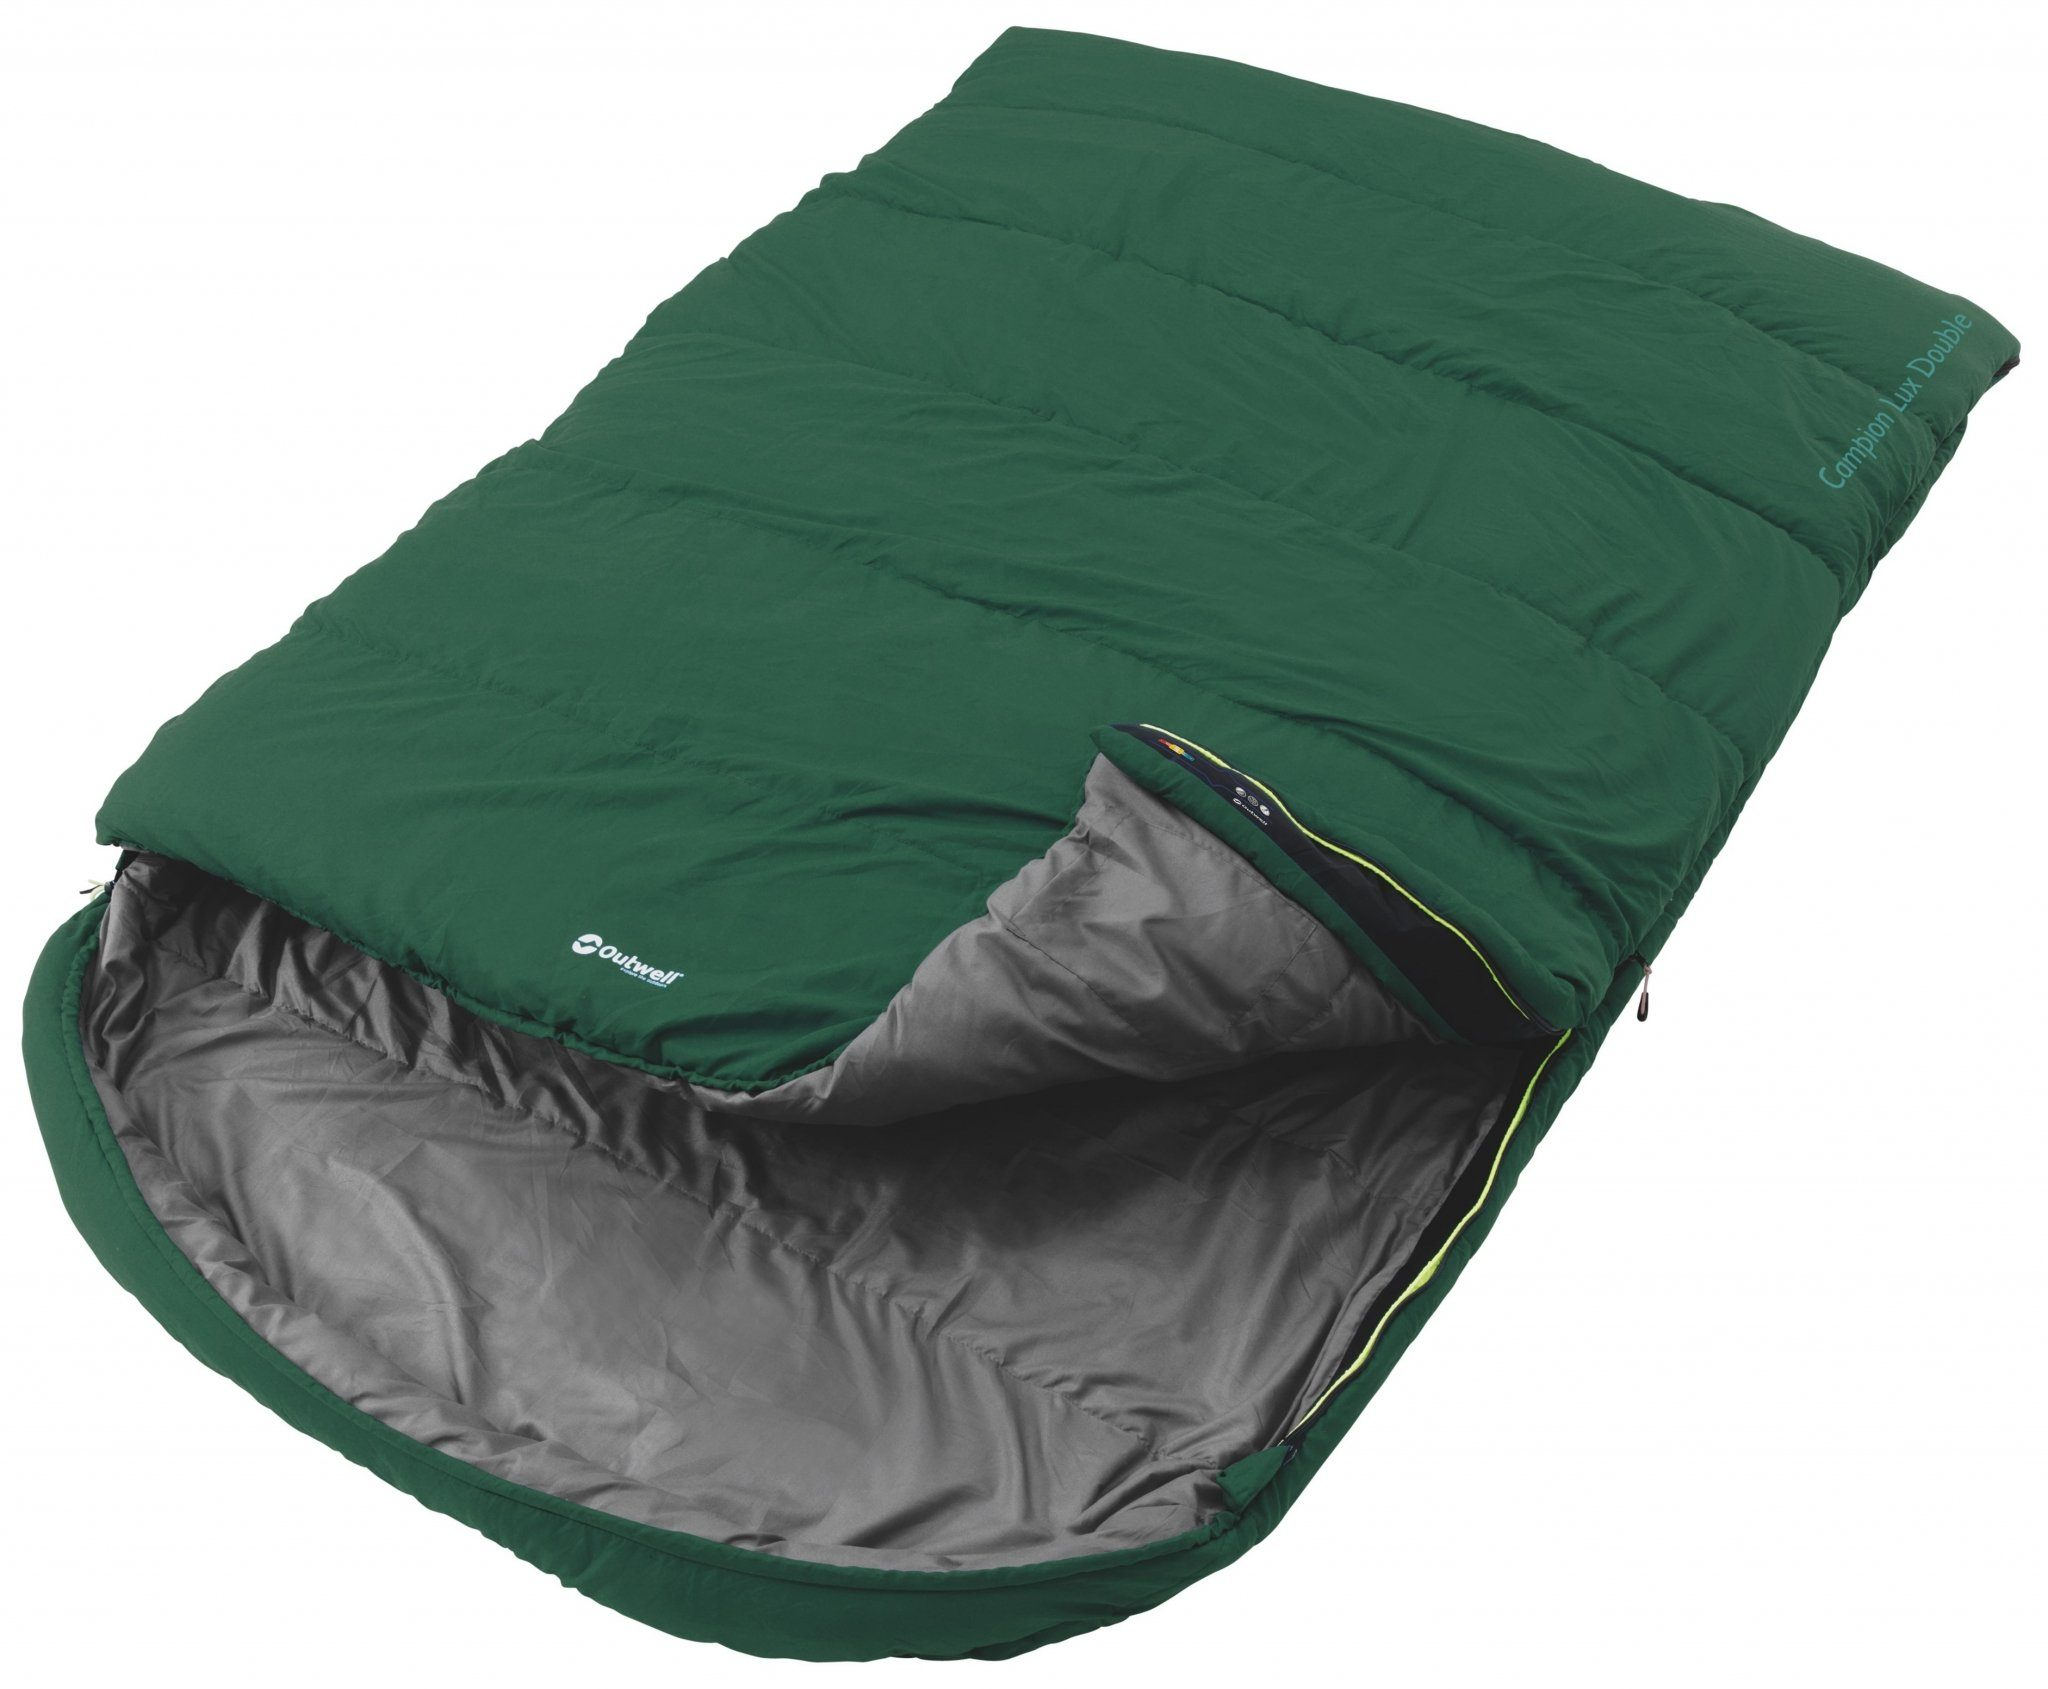 Outwell Schlafsack »Campion Lux Double Sleeping Bag«